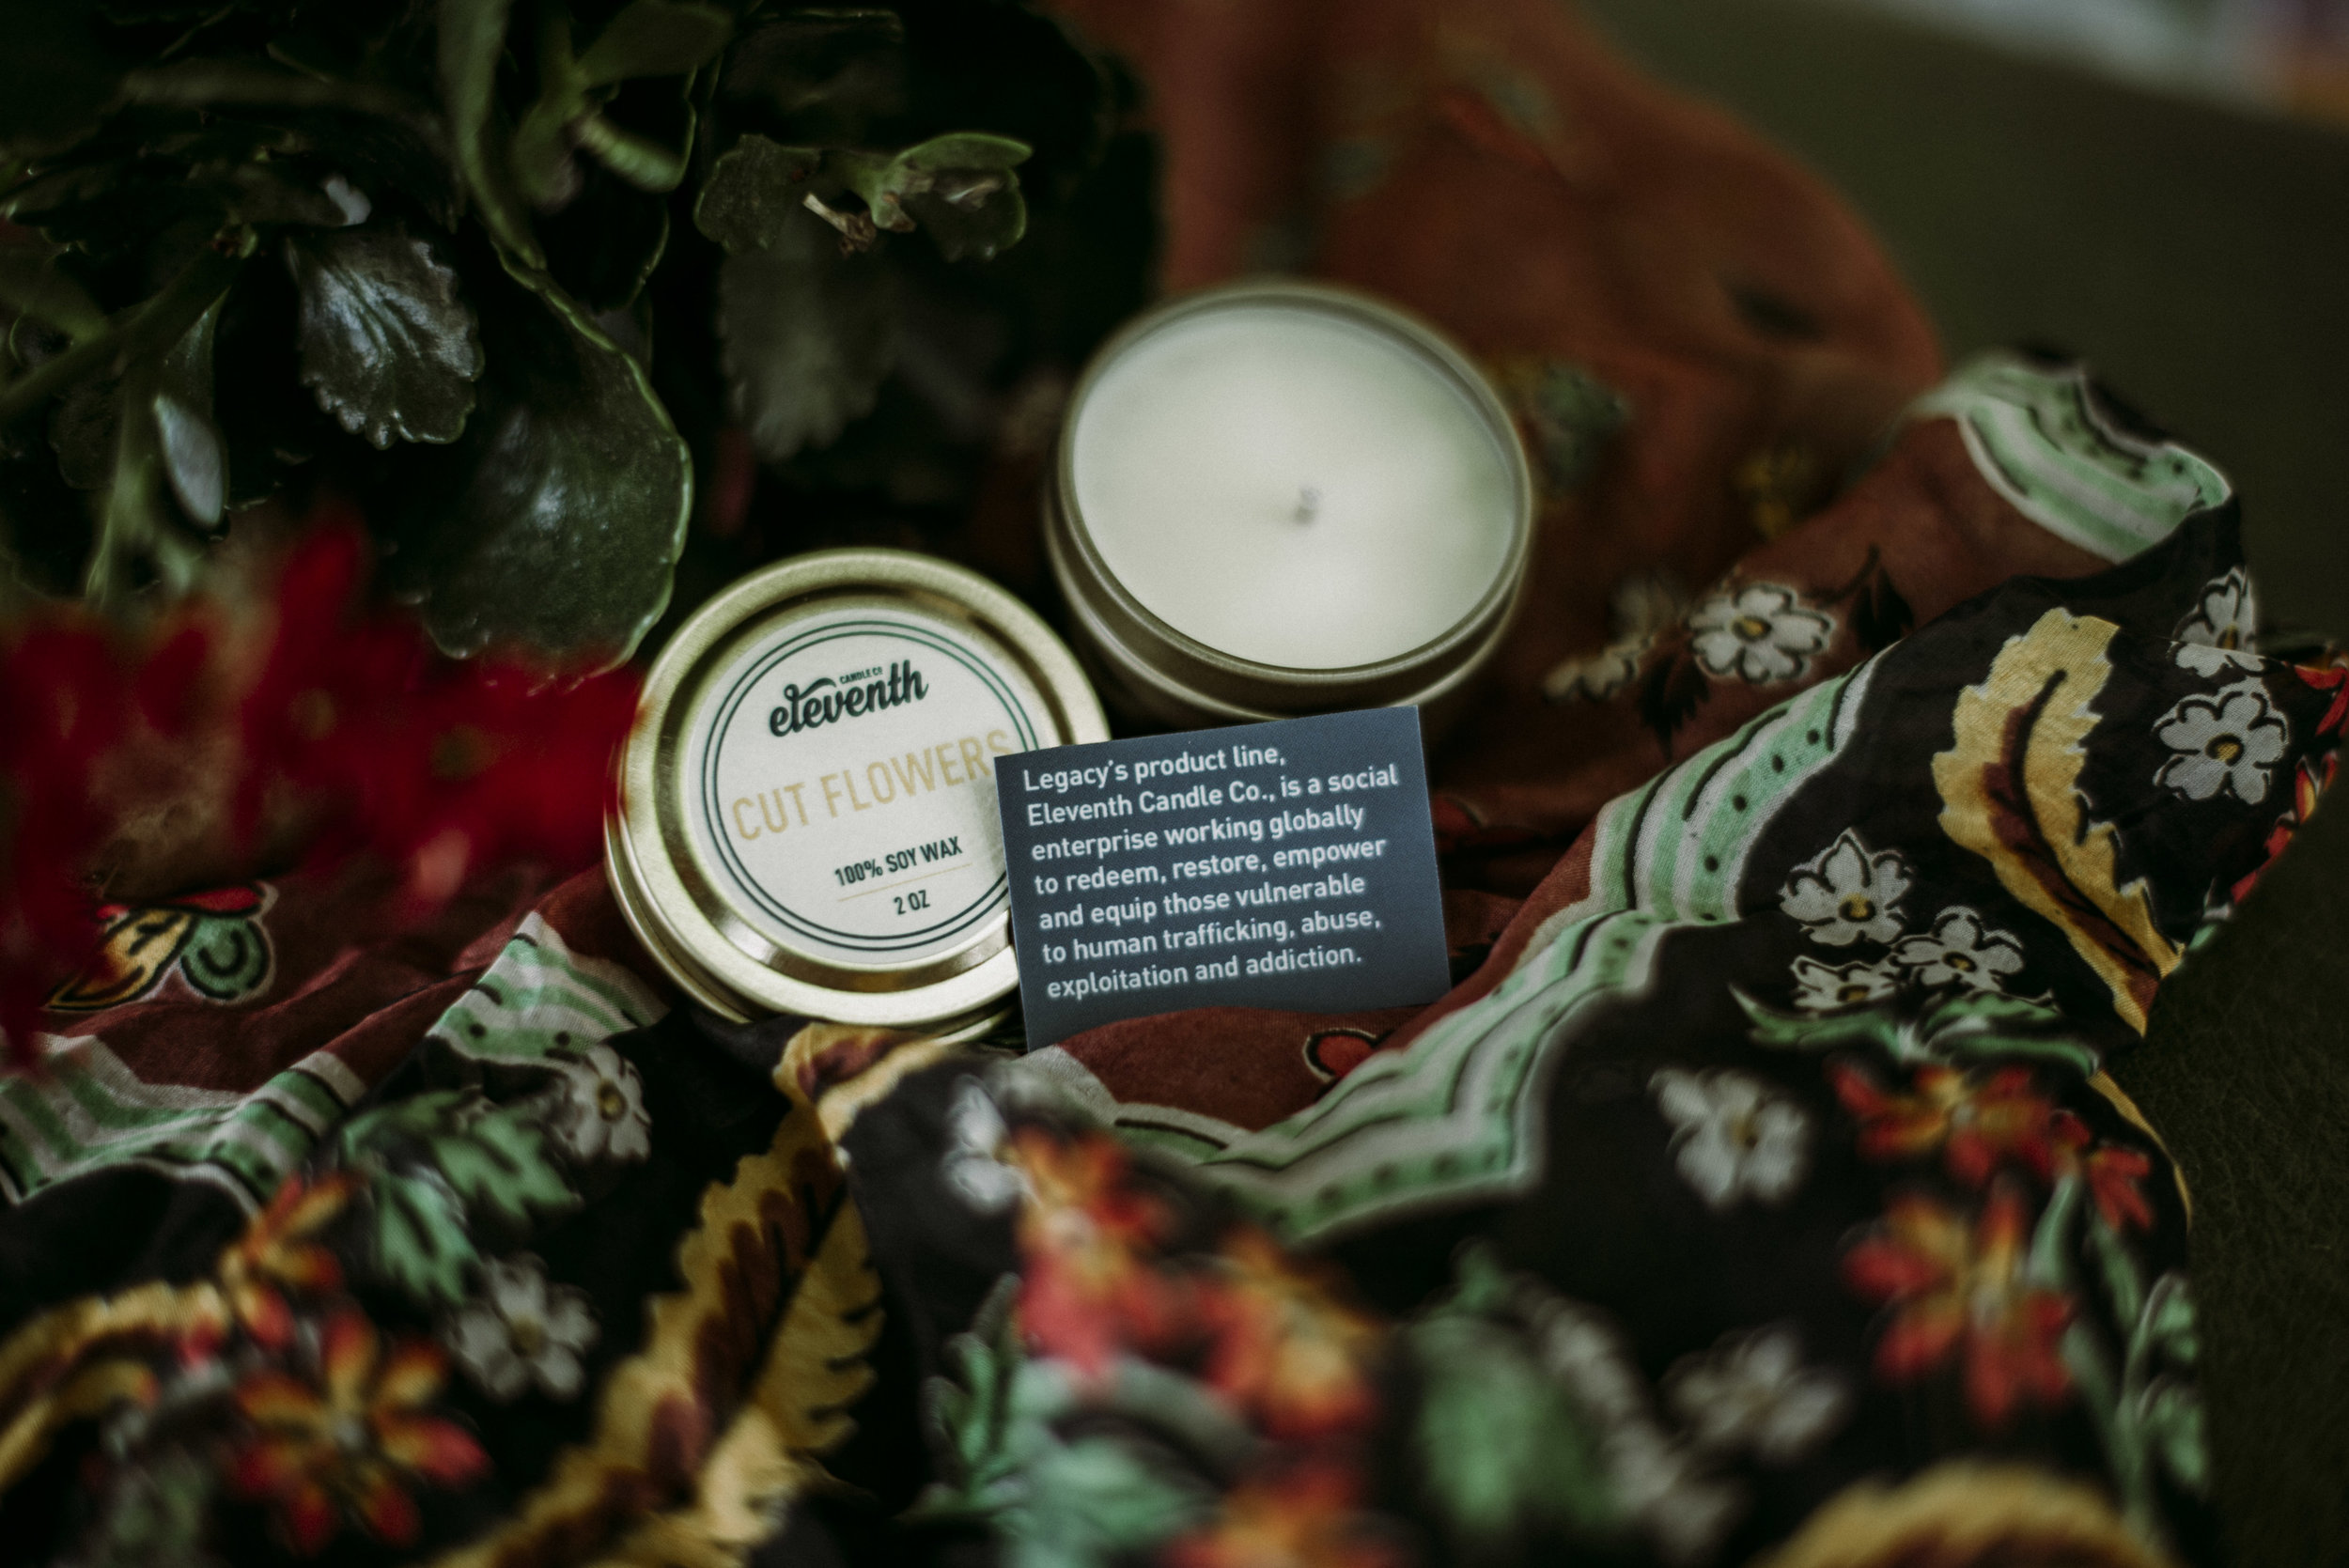 Candles from ex trafficked women